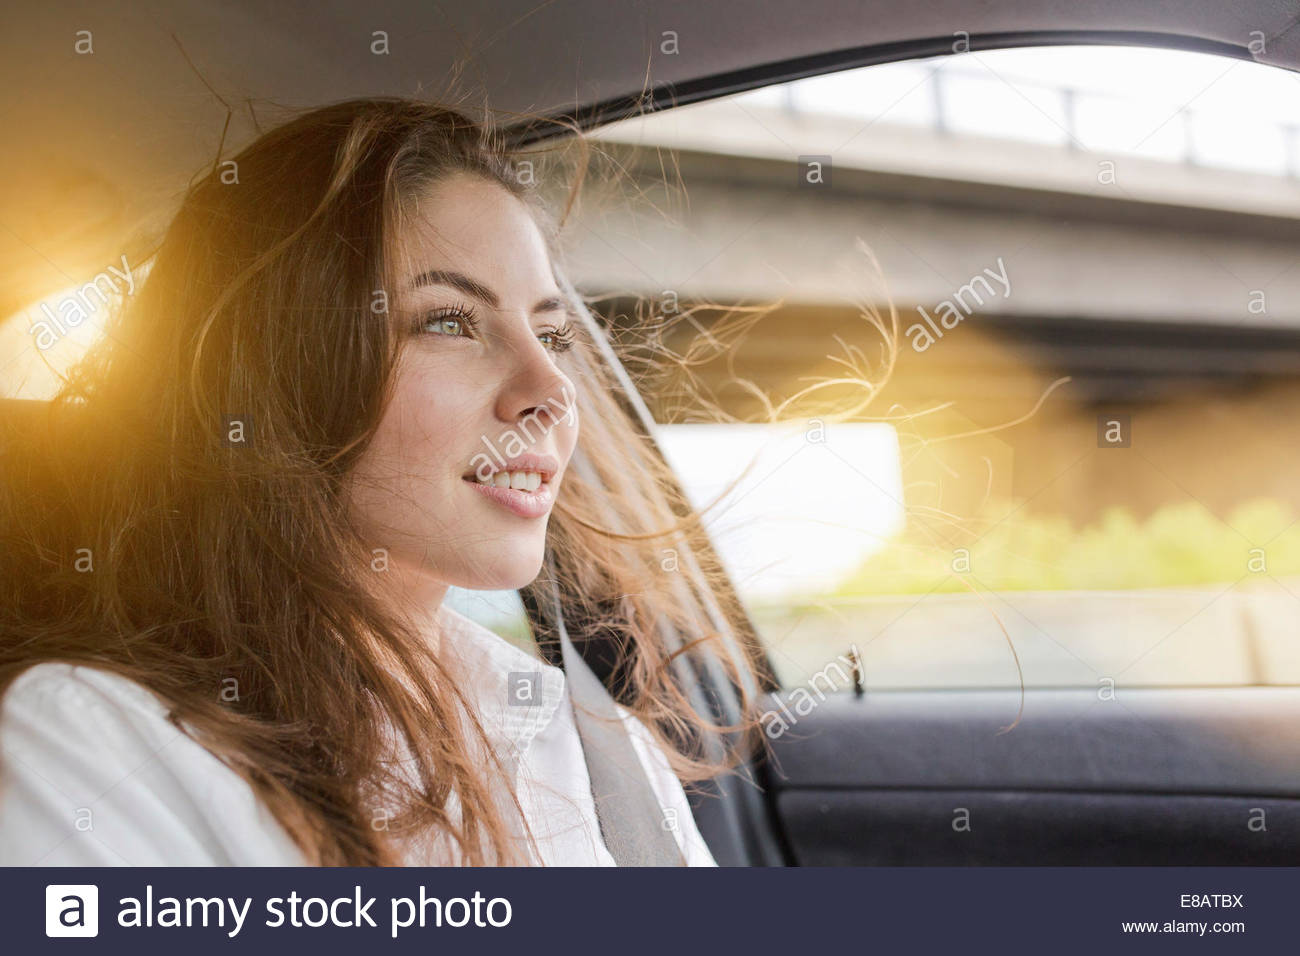 Young woman in car, hair blowing in wind Stock Photo